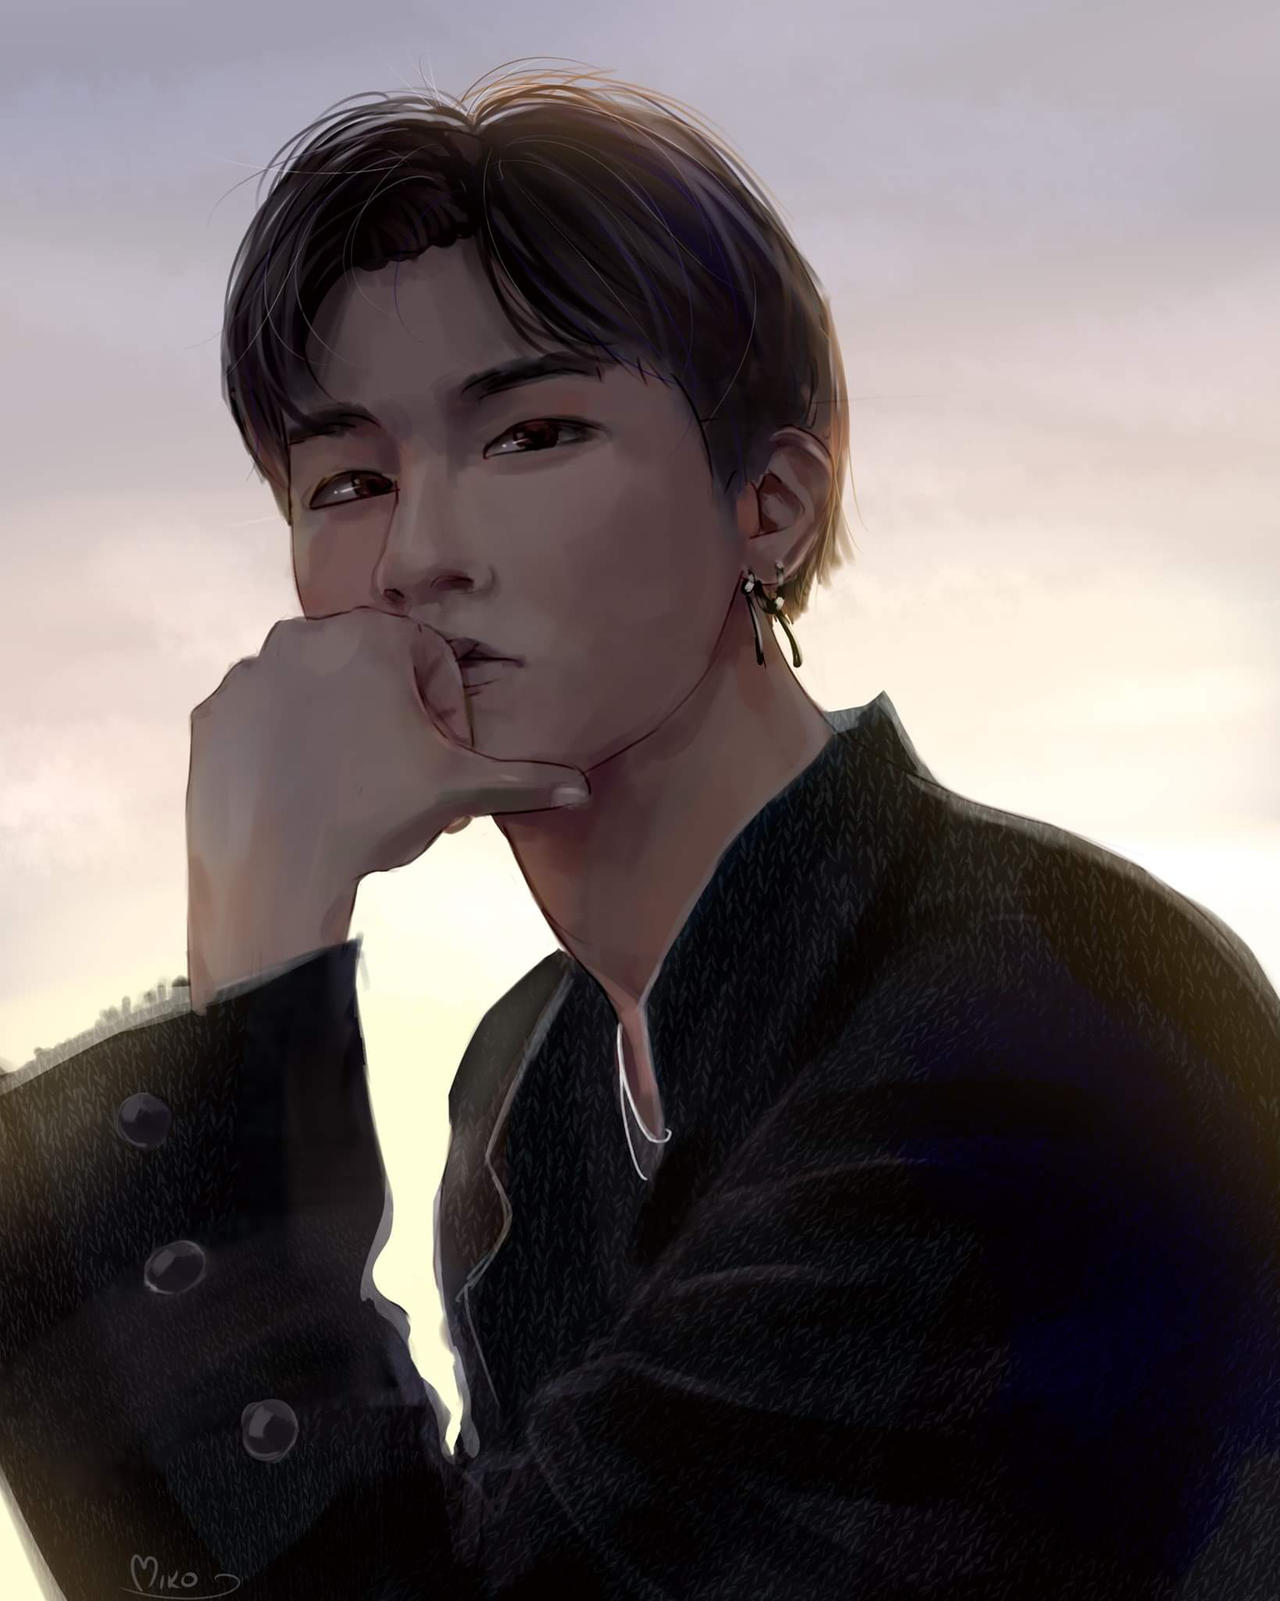 Changkyun Monsta X By Yokina Miko On Deviantart With tenor, maker of gif keyboard, add popular im changkyun animated gifs to your conversations. changkyun monsta x by yokina miko on